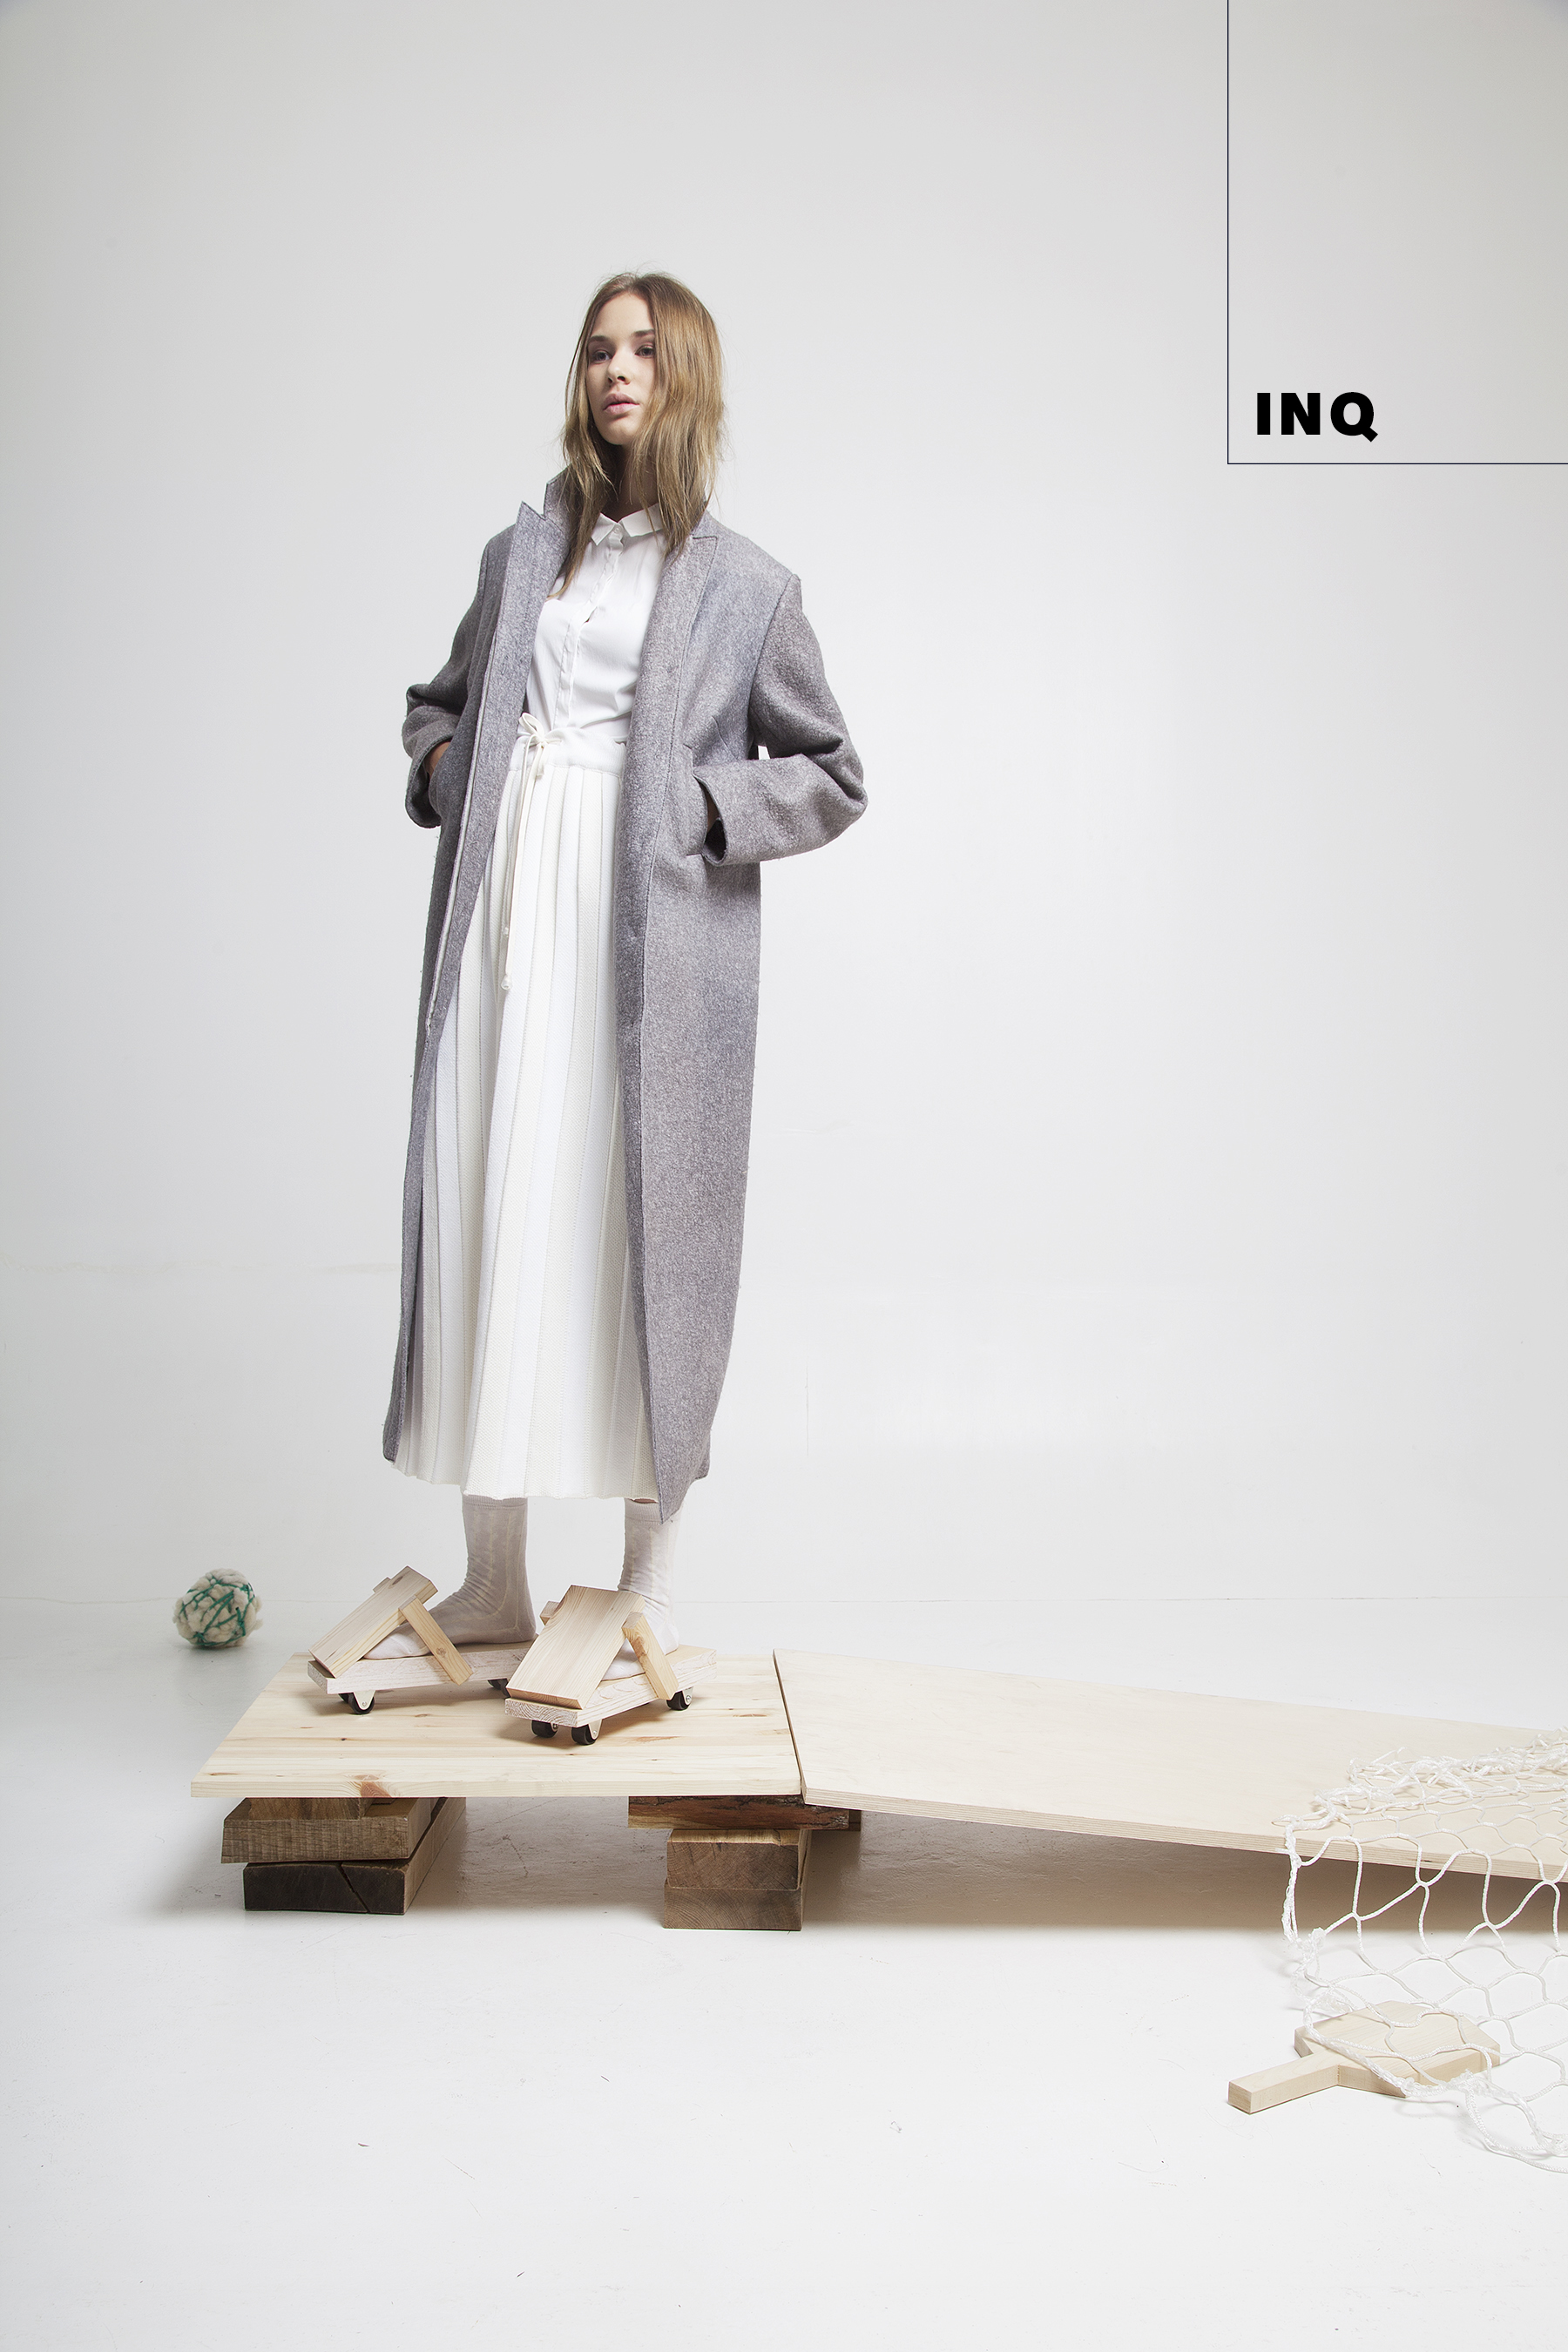 INQ concept_AW14_womenclothing_model Laura_photo by Mate Moro_hair and makeup by HAVE Salon_1.jpg